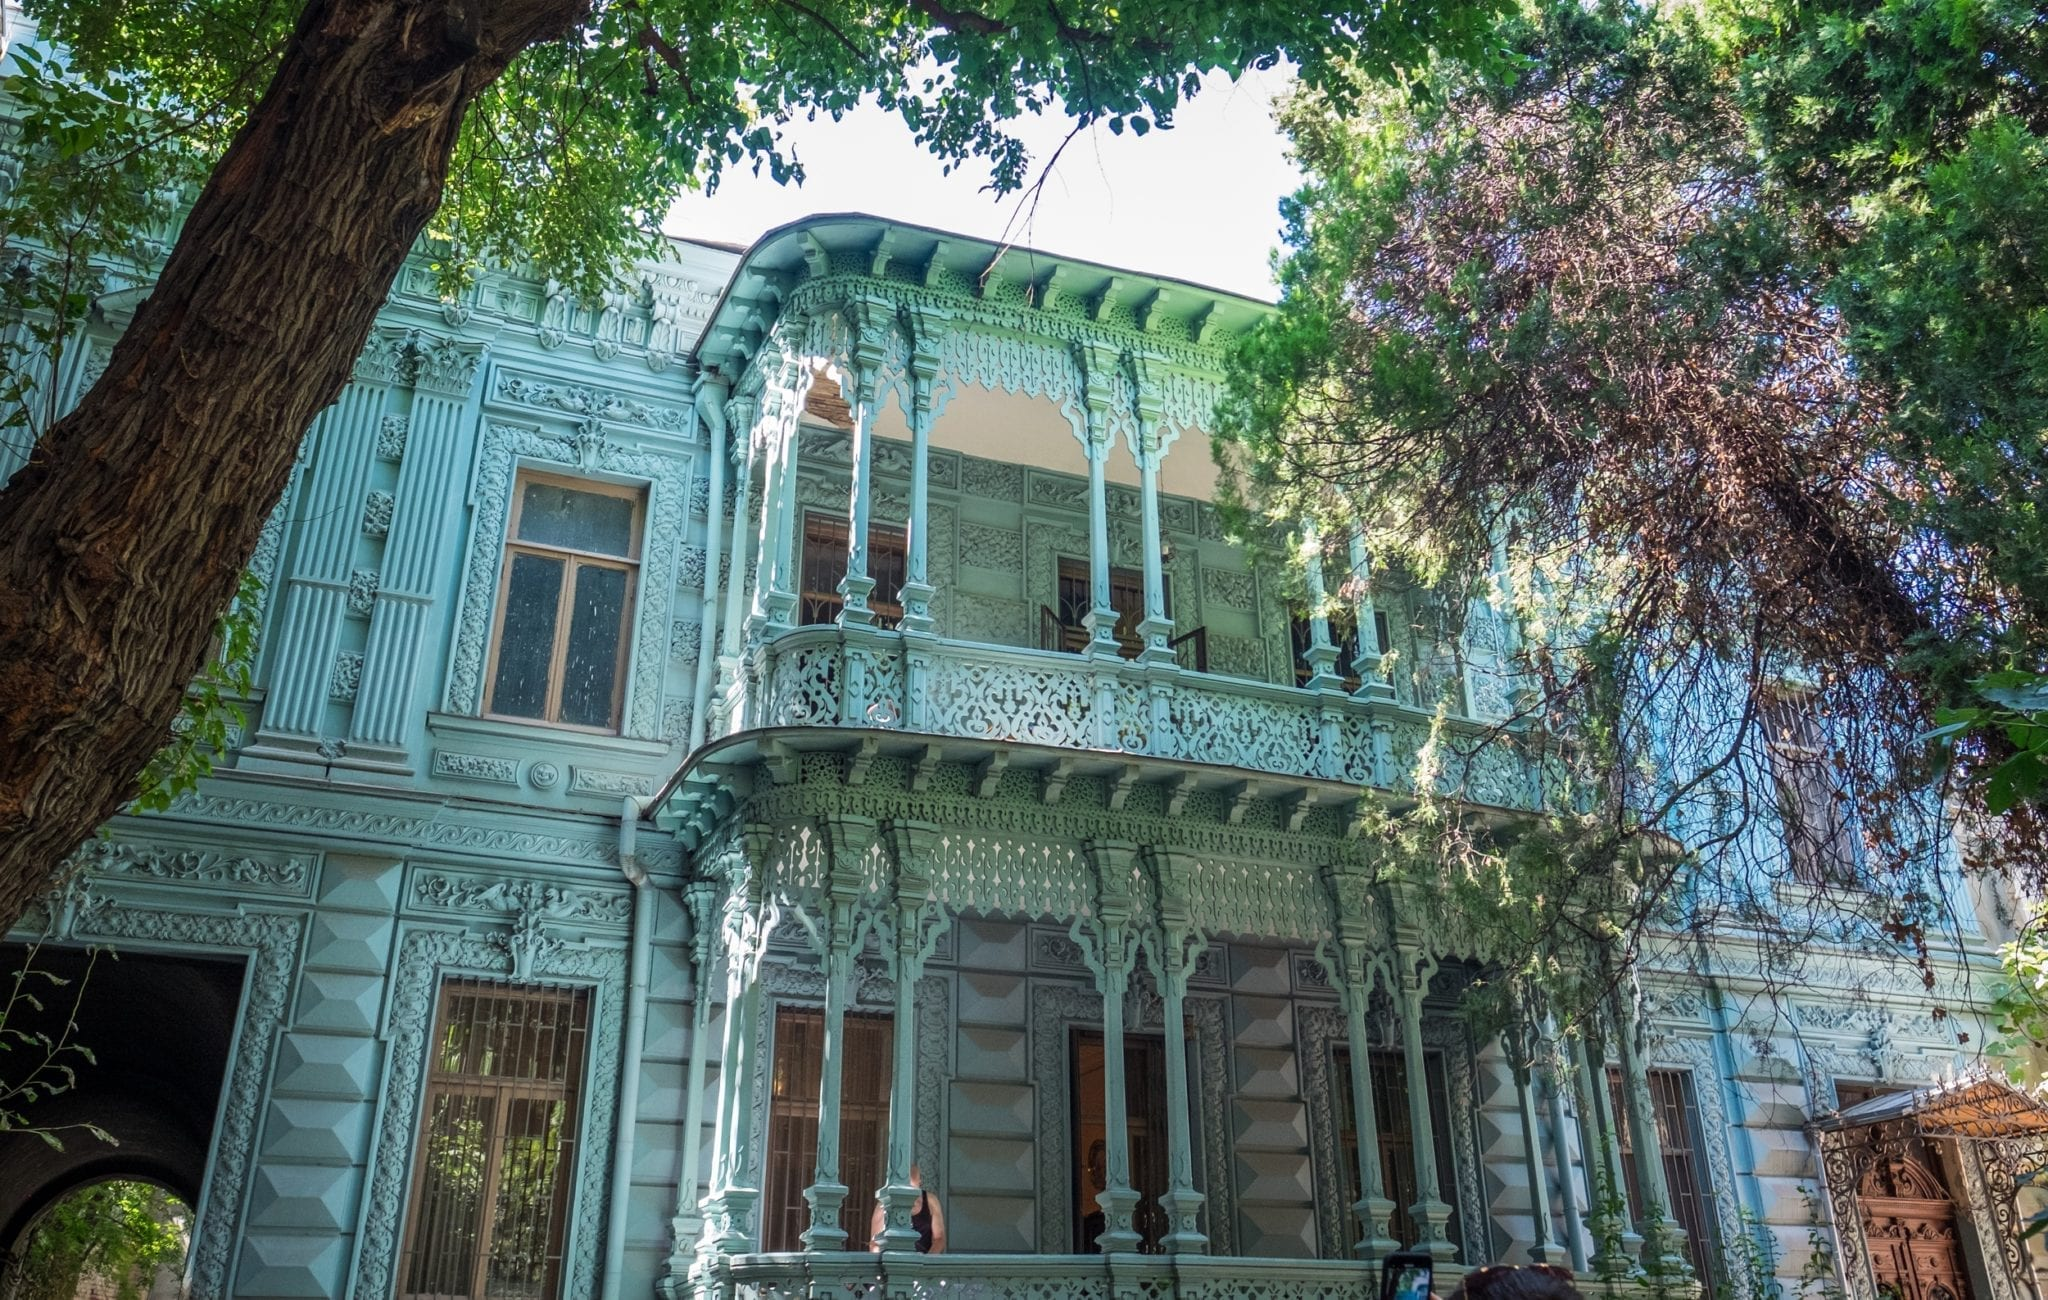 A pale blue house with light sea green trim on the balcony, surrounded by trees.